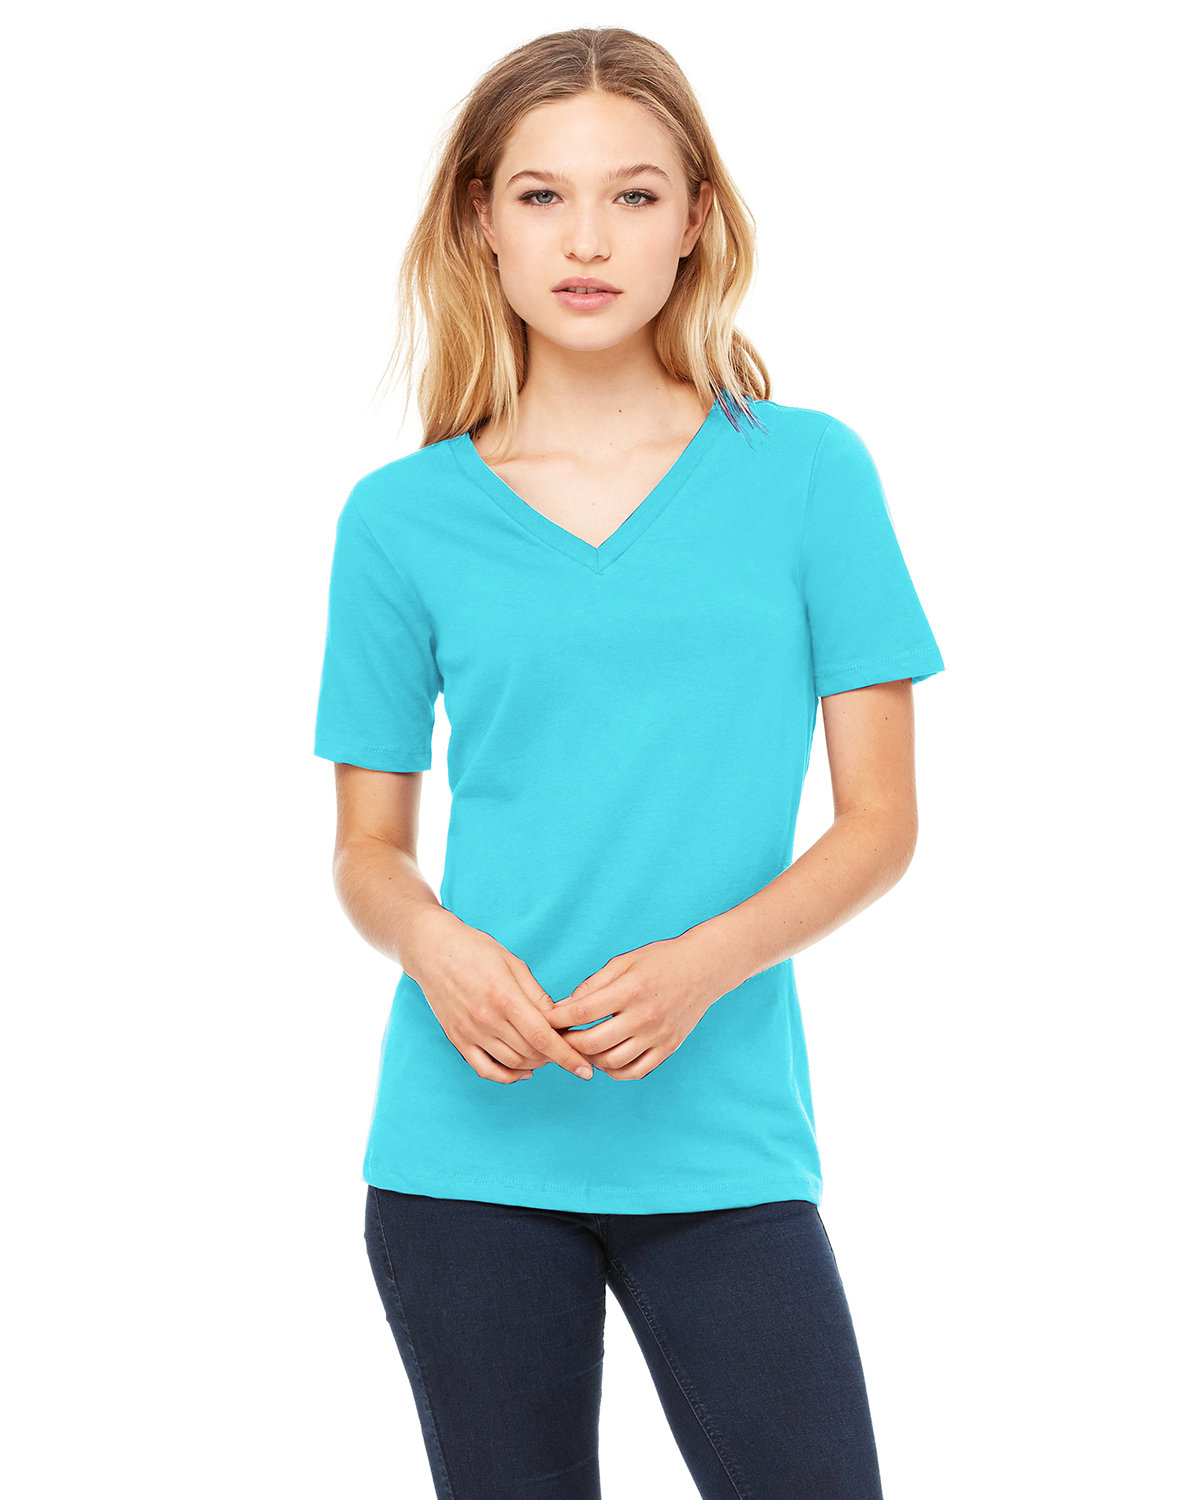 Bella + Canvas Ladies' Relaxed Jersey V-Neck T-Shirt TURQUOISE